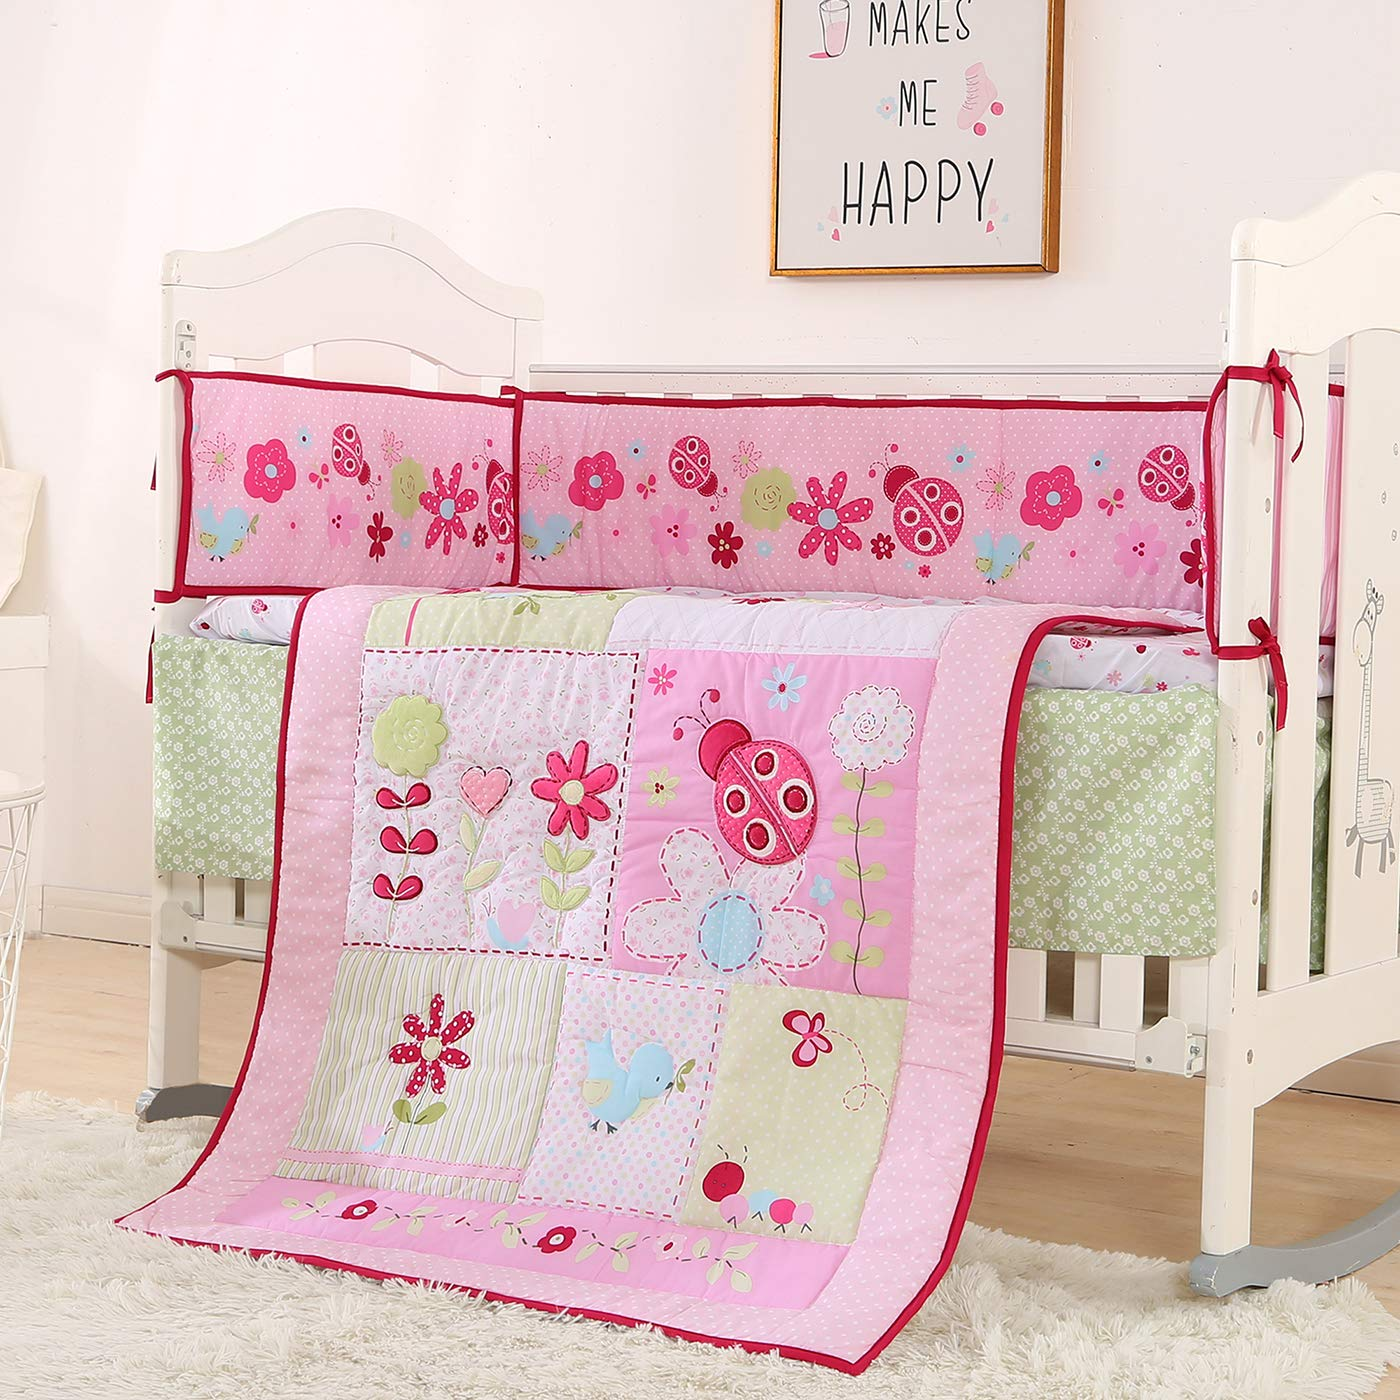 KINBEDY Pink Flower Crib Bedding Set 7 Piece Neutral Nursery Crib Set with Bumpers for Baby Girls and Boys (One Size, Pink Flowers)